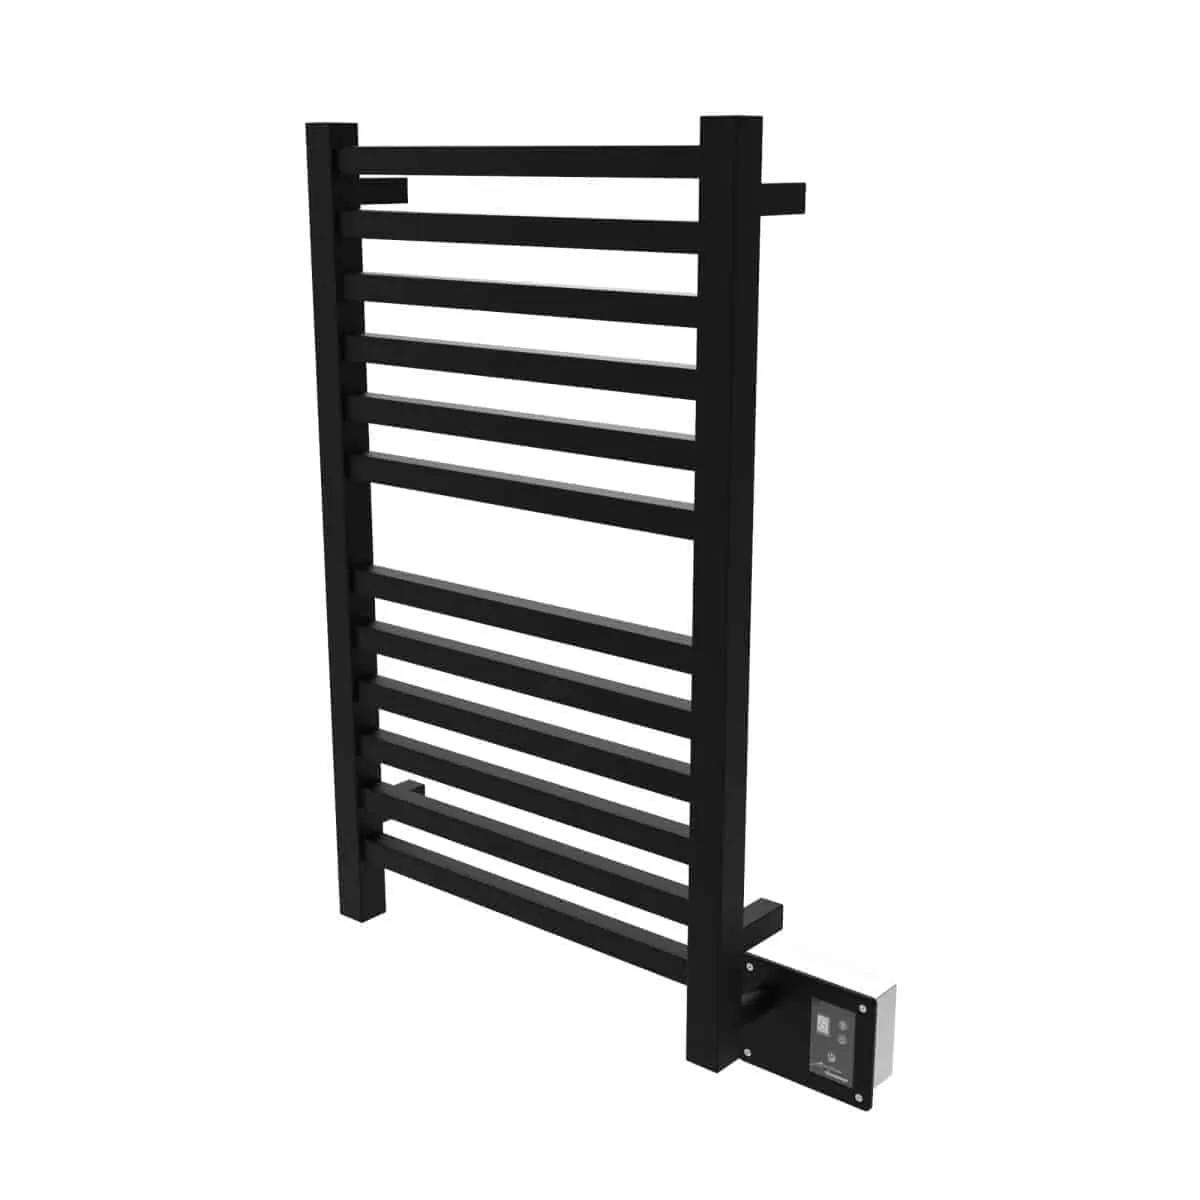 Amba Q2033MB Quadro Heated Towel Rack - Matte Black